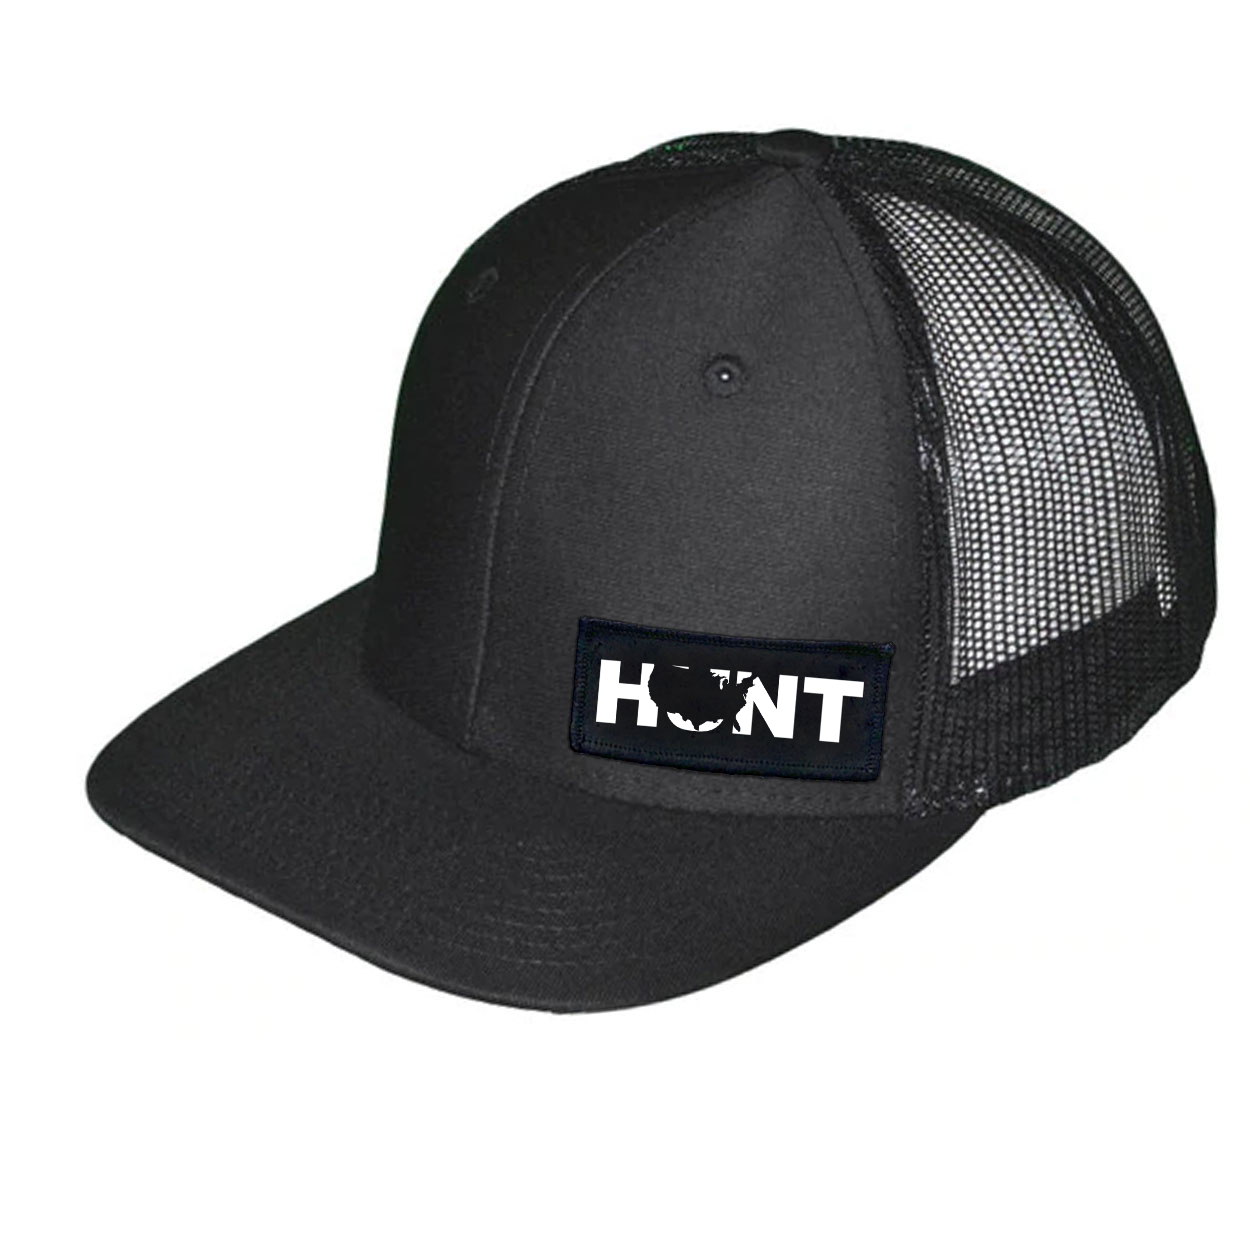 Hunt United States Night Out Woven Patch Snapback Trucker Hat Black (White Logo)